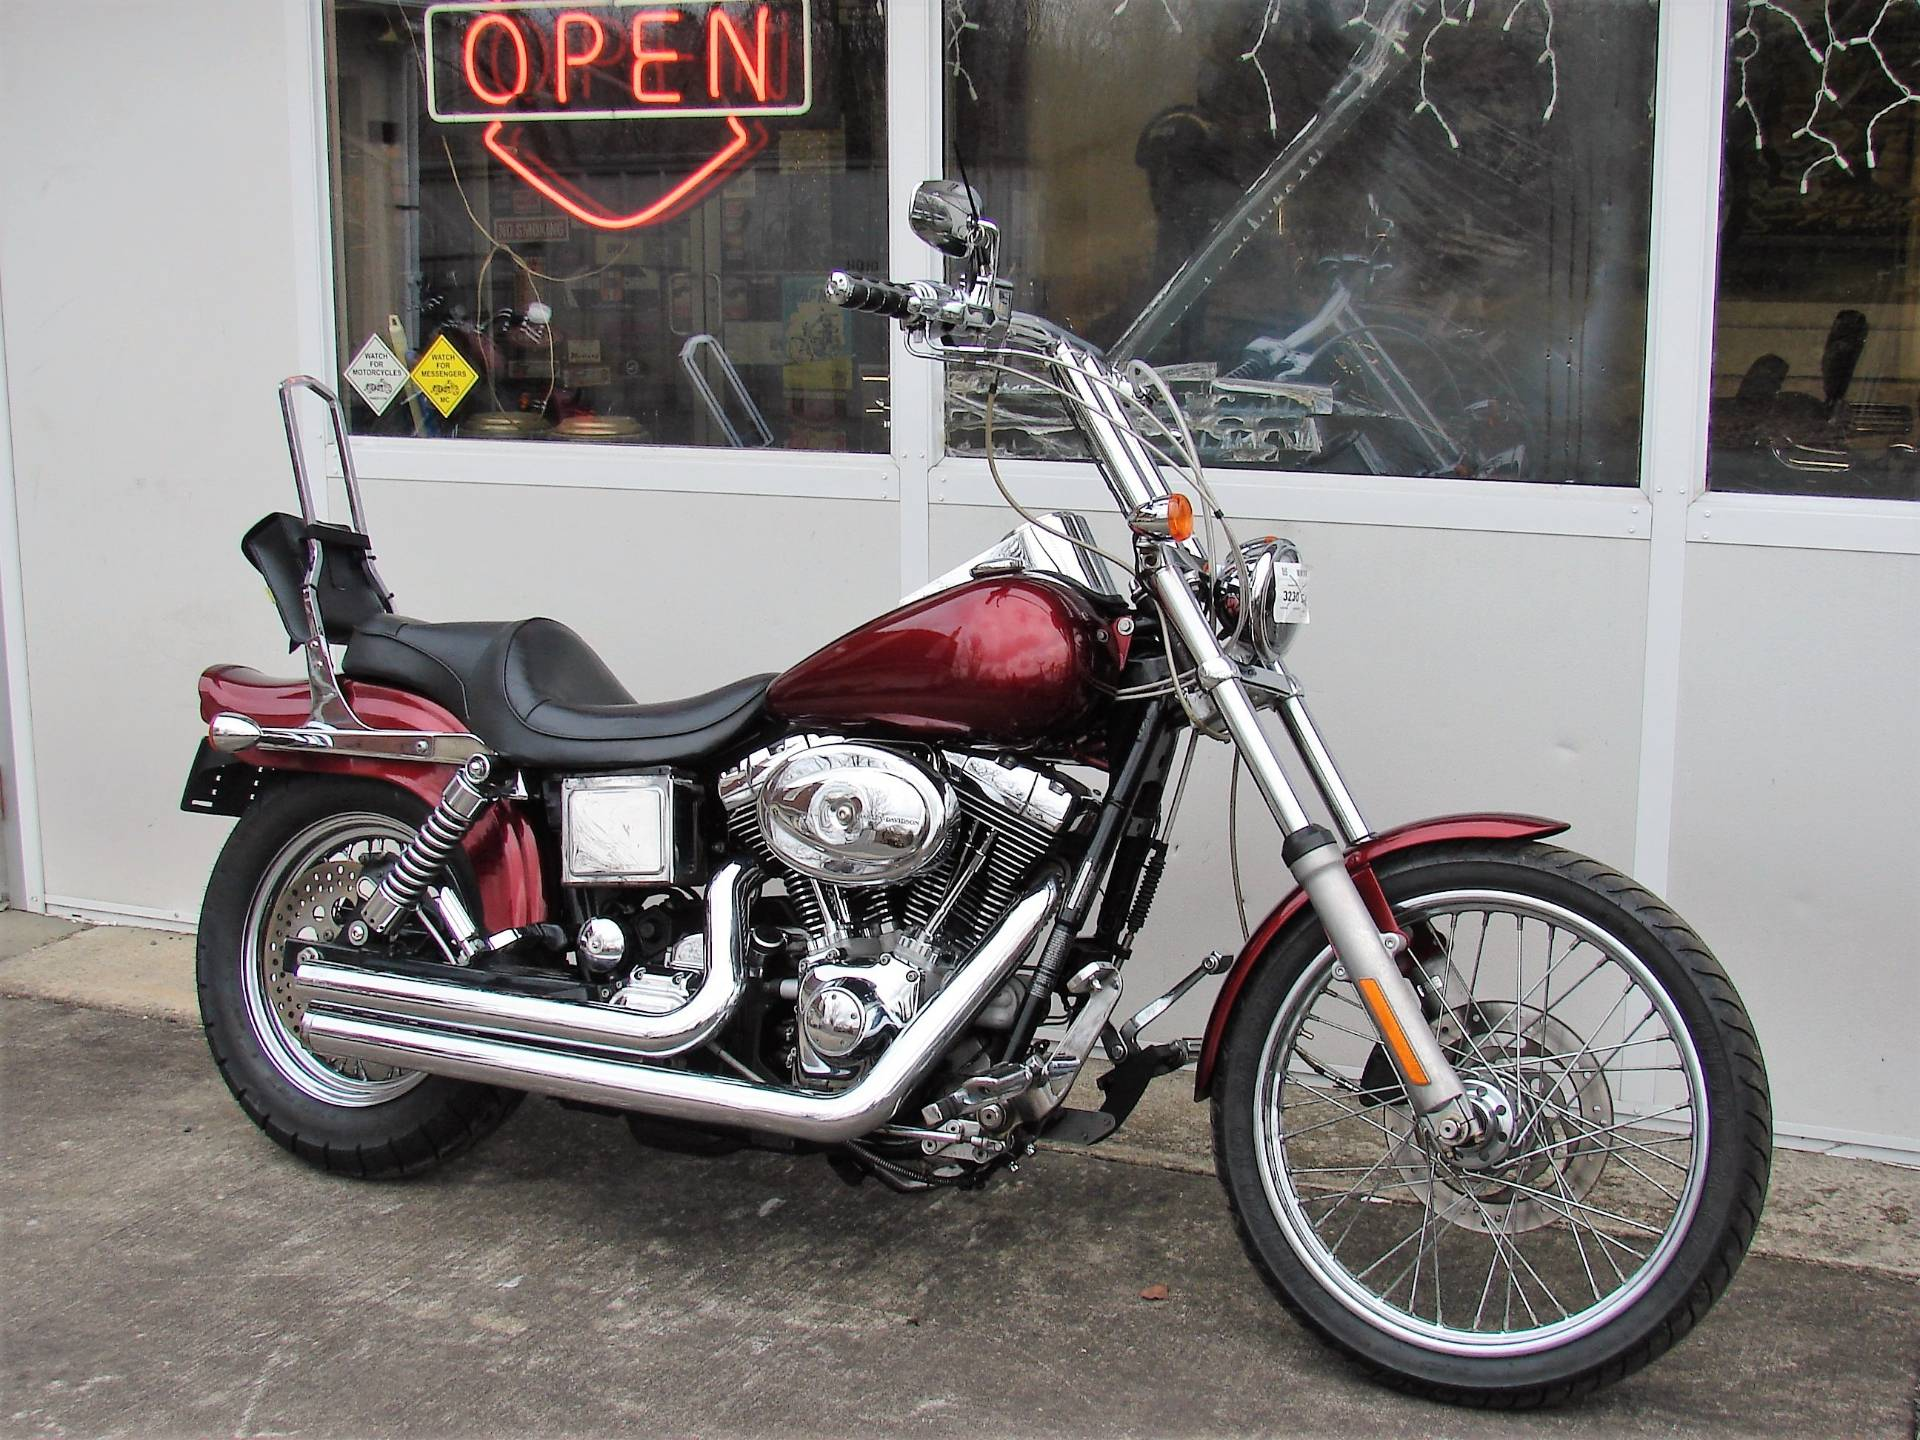 2002 Harley-Davidson FXDWG Dyna Wide Glide in Williamstown, New Jersey - Photo 19